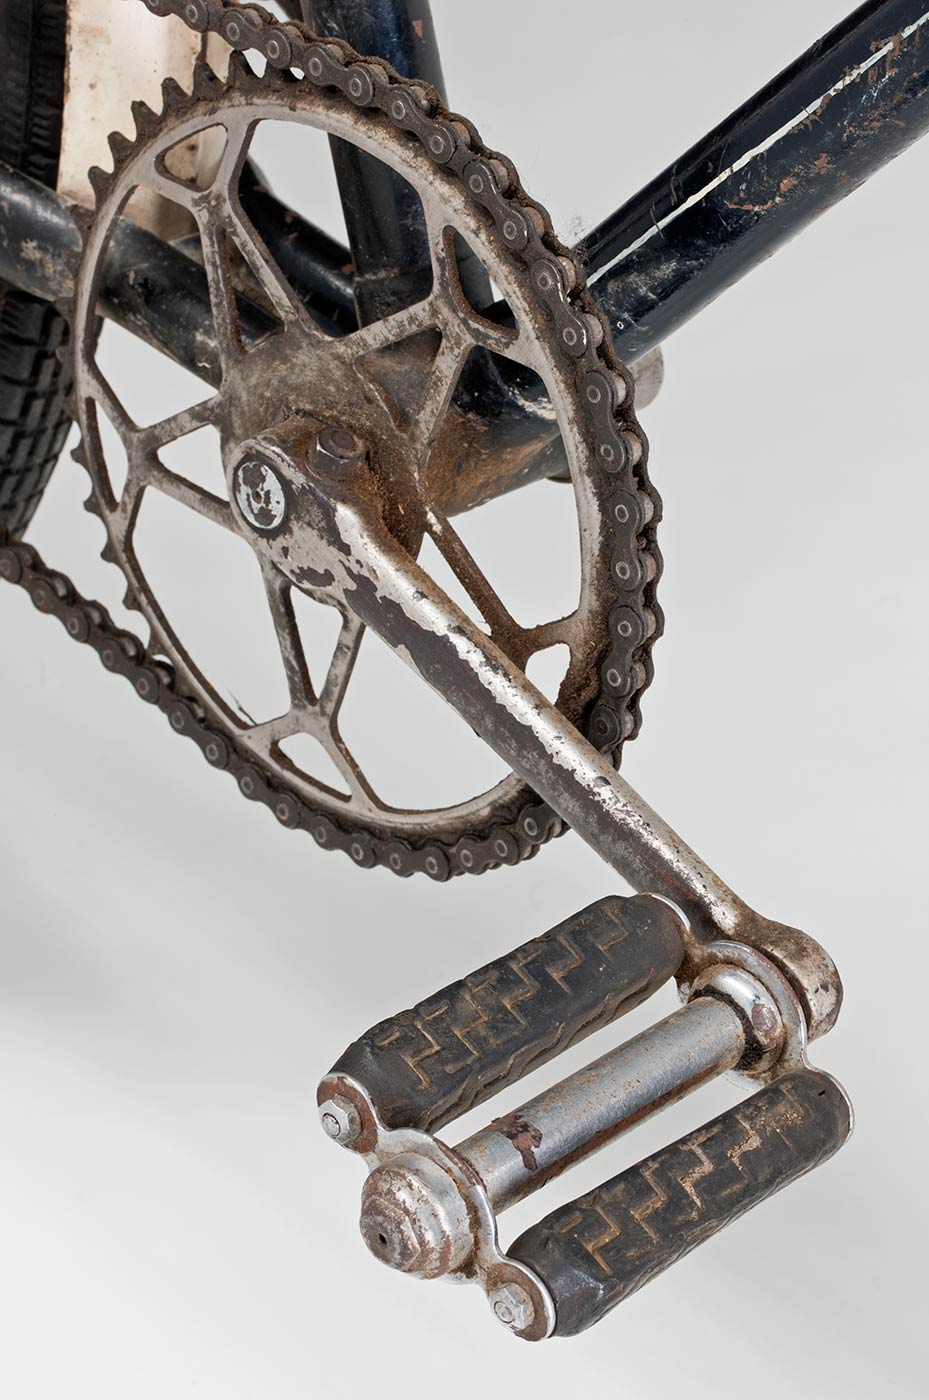 A bike chain and pedal. - click to view larger image